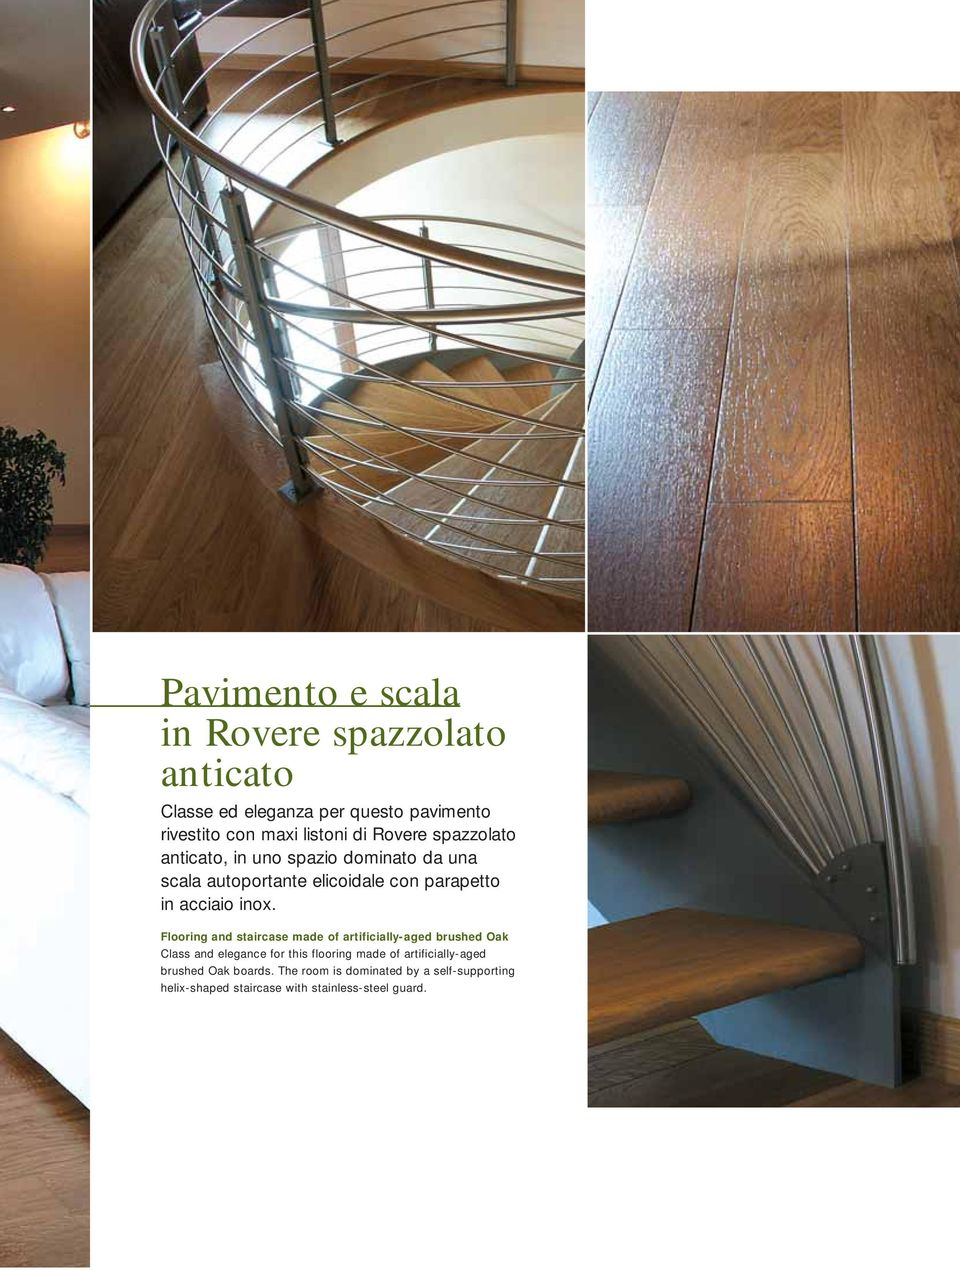 Flooring and staircase made of artificially-aged brushed Oak Class and elegance for this flooring made of